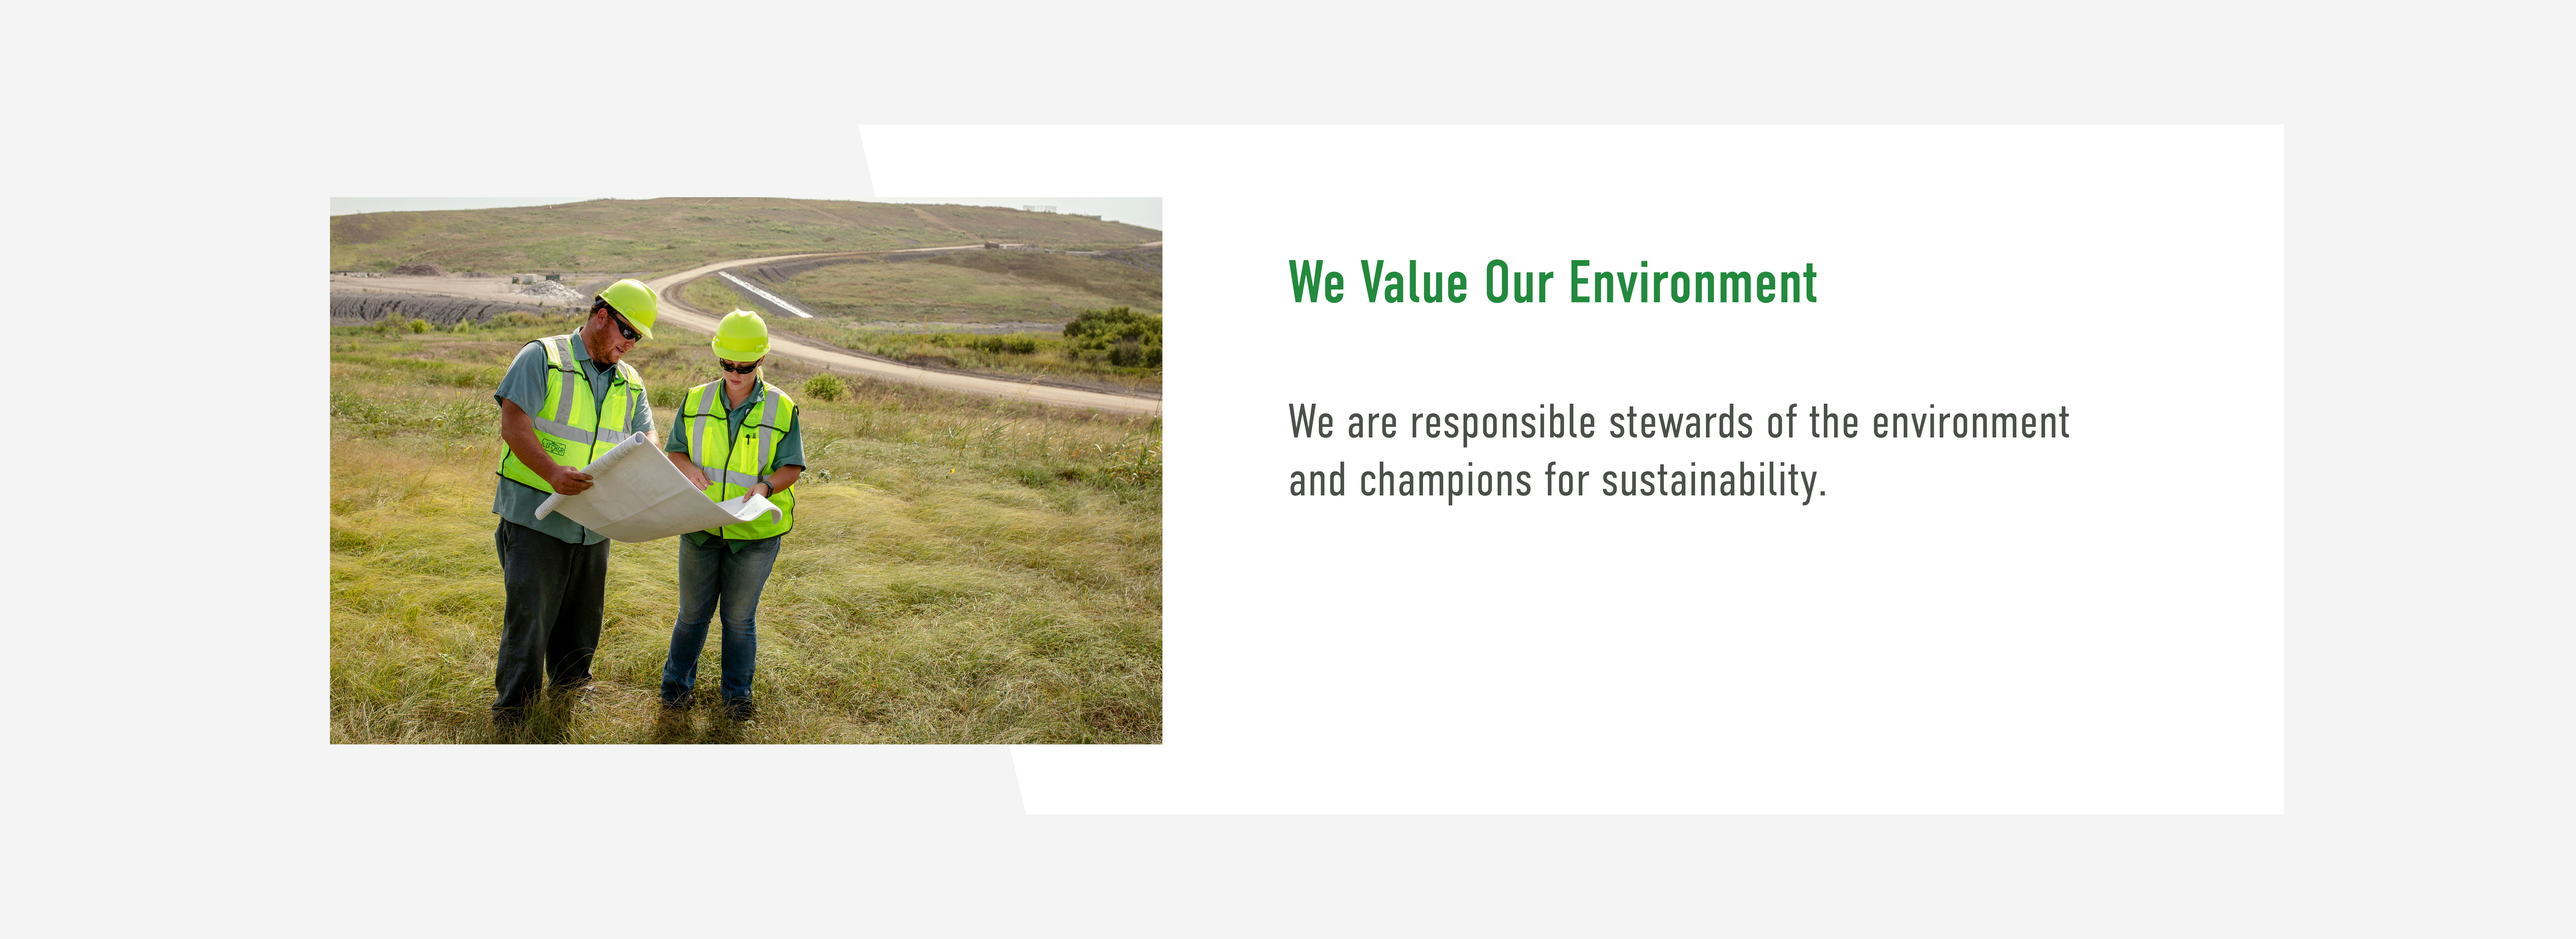 We Value our Environment. We are responsible stewards of the environment and champions for sustainability.